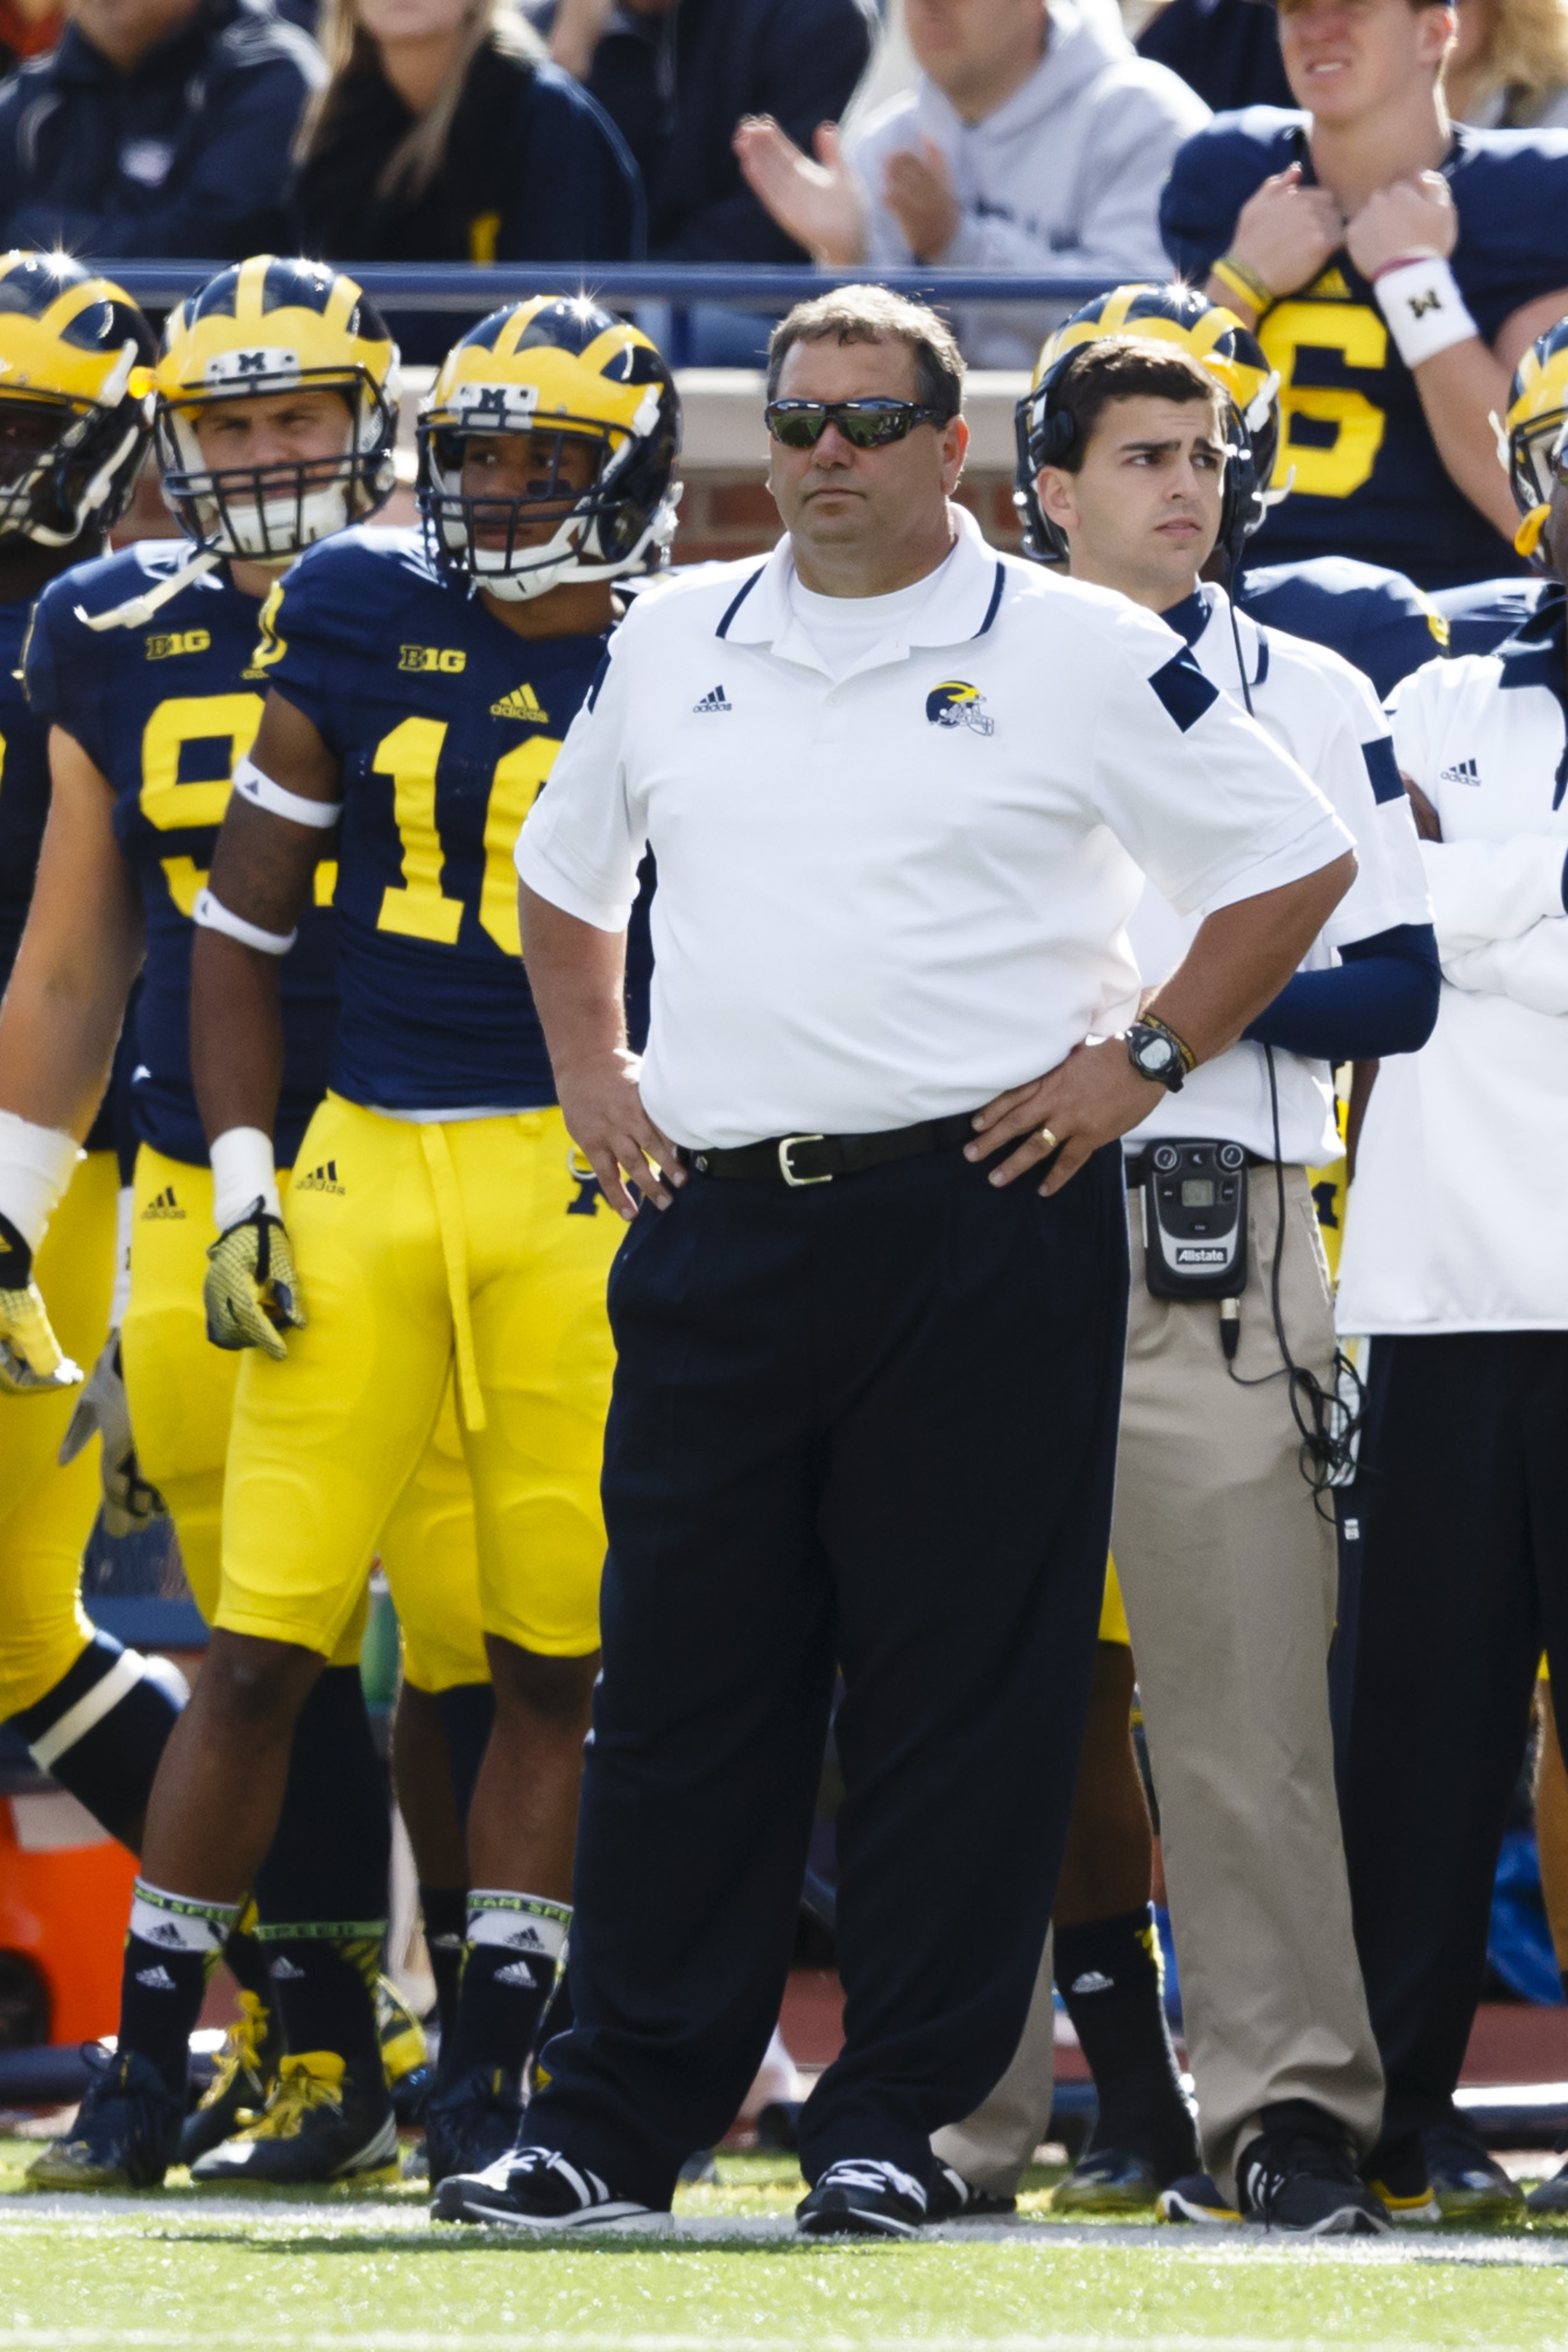 Former San Diego State head coach Brady Hoke and his Michigan Wolverines is standing between Utah and what could be a very good season.